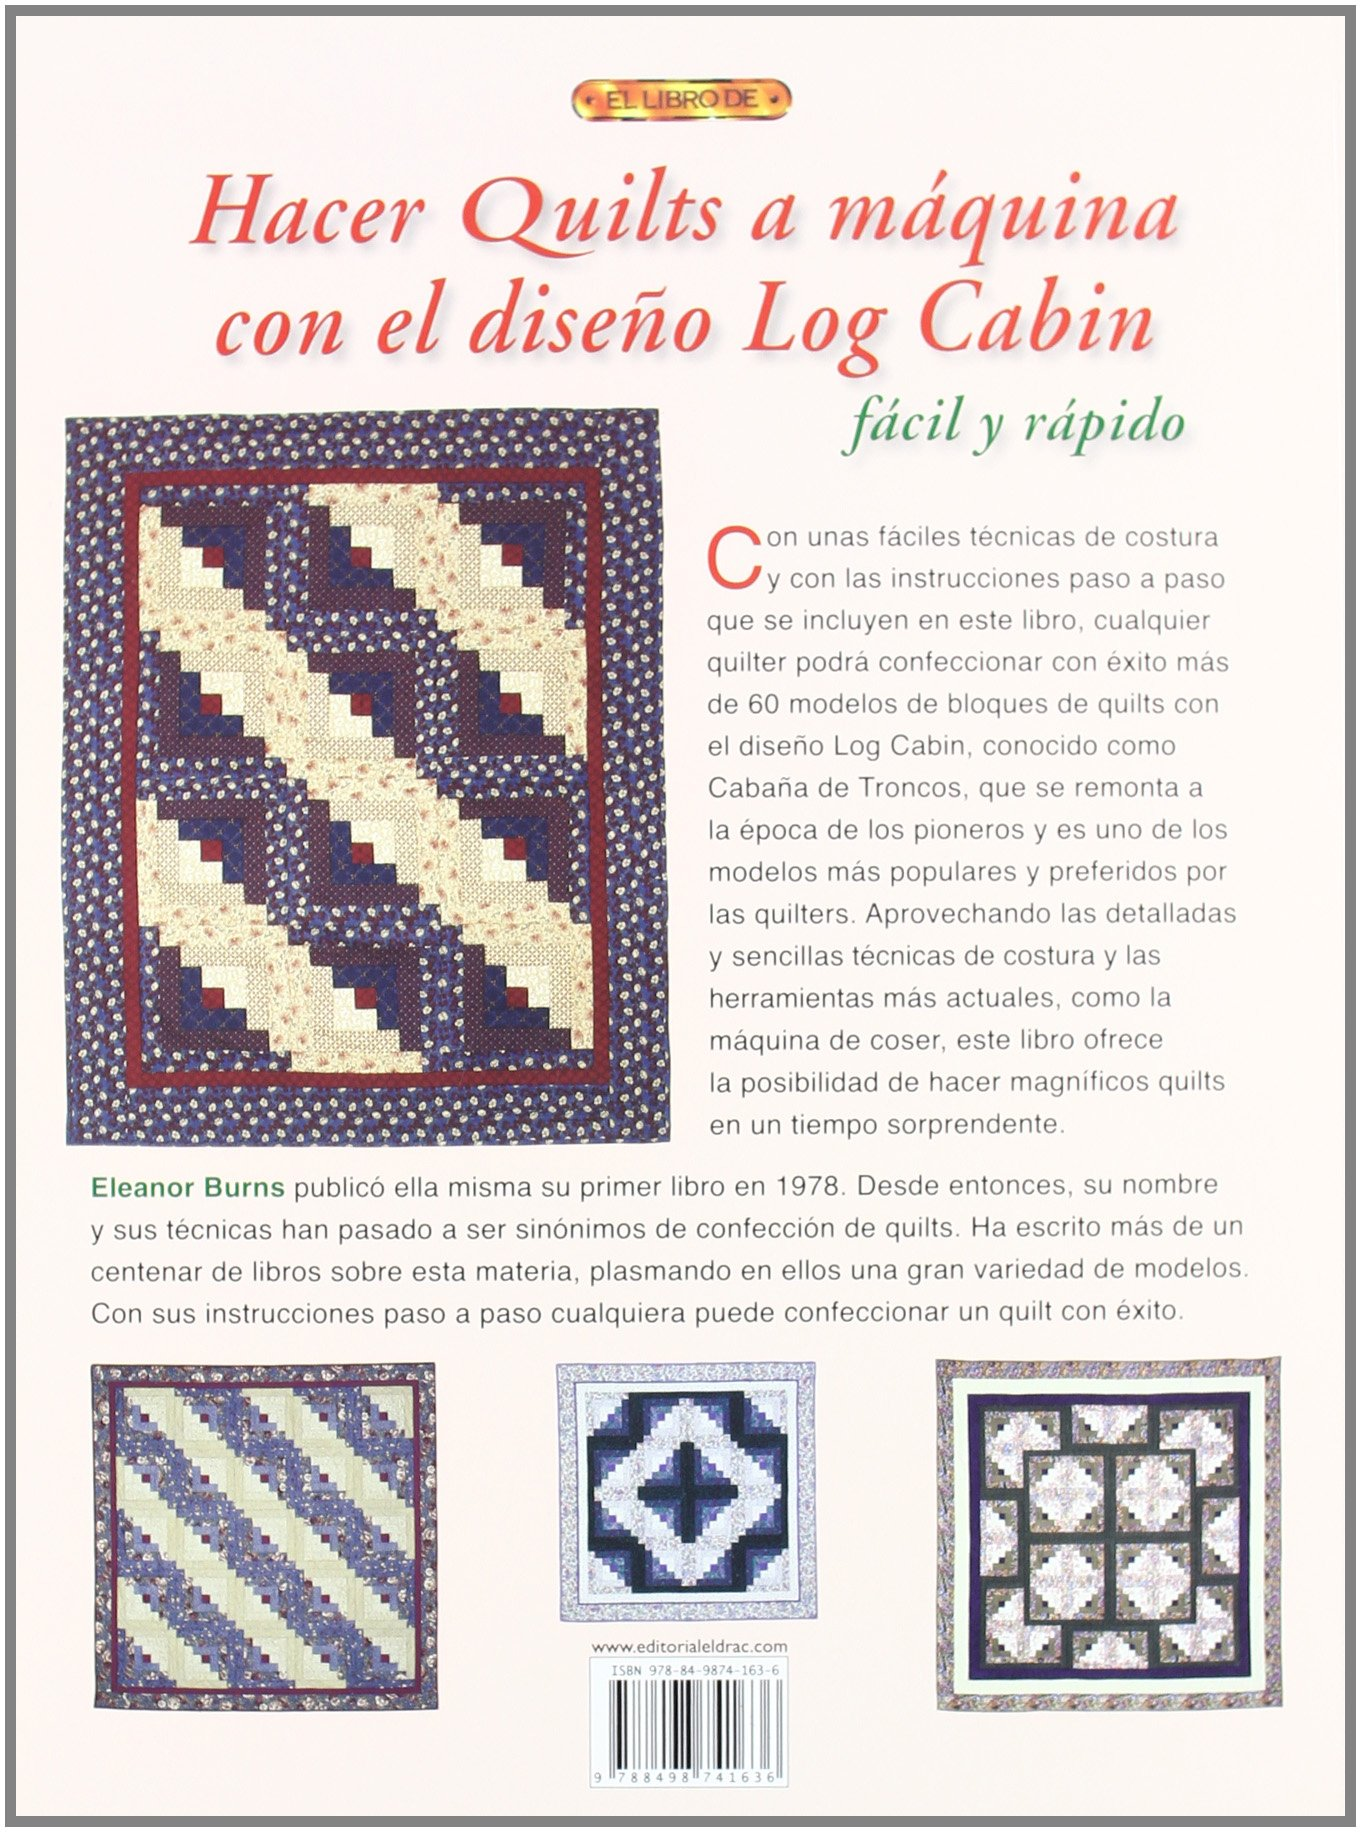 Hacer quilts a maquina con diseno Log Cabin / Make a quilts in a day: Facil y rapido / Log Cabin Pattern (Spanish Edition): Eleanor Burns, Ana Maria Aznar: ...